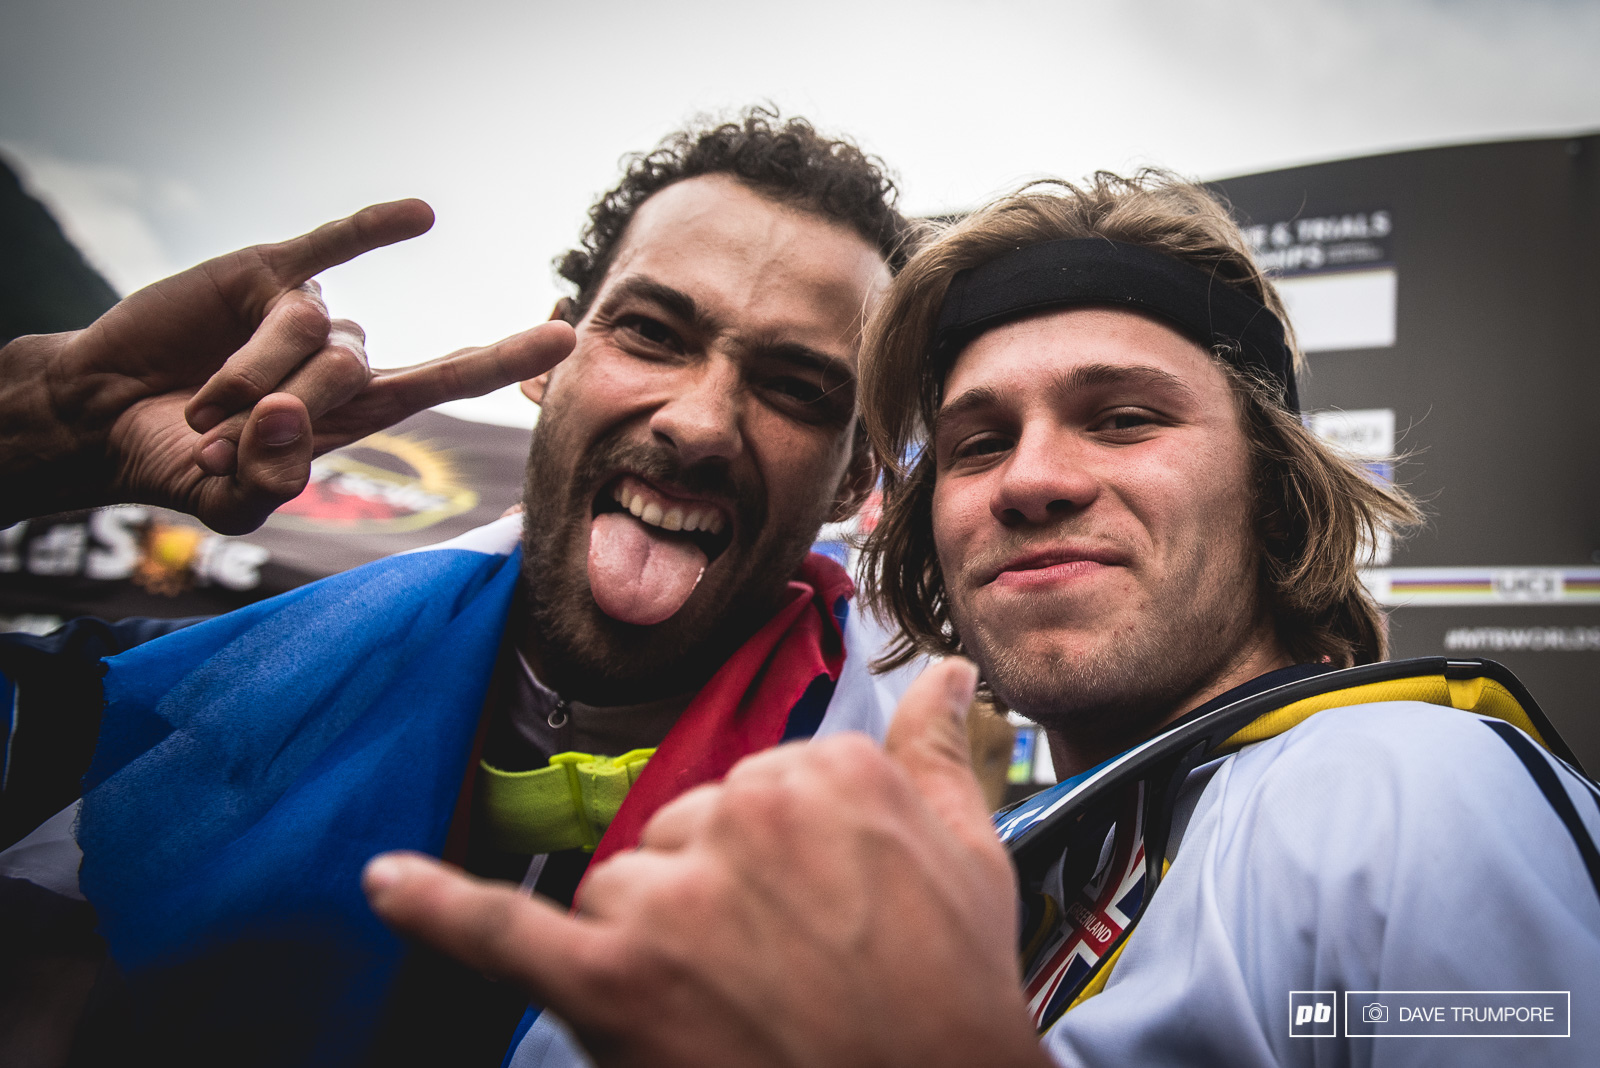 Florent Payet and Laurie Greenland celebrate after an incredible day of racing at World Champs.